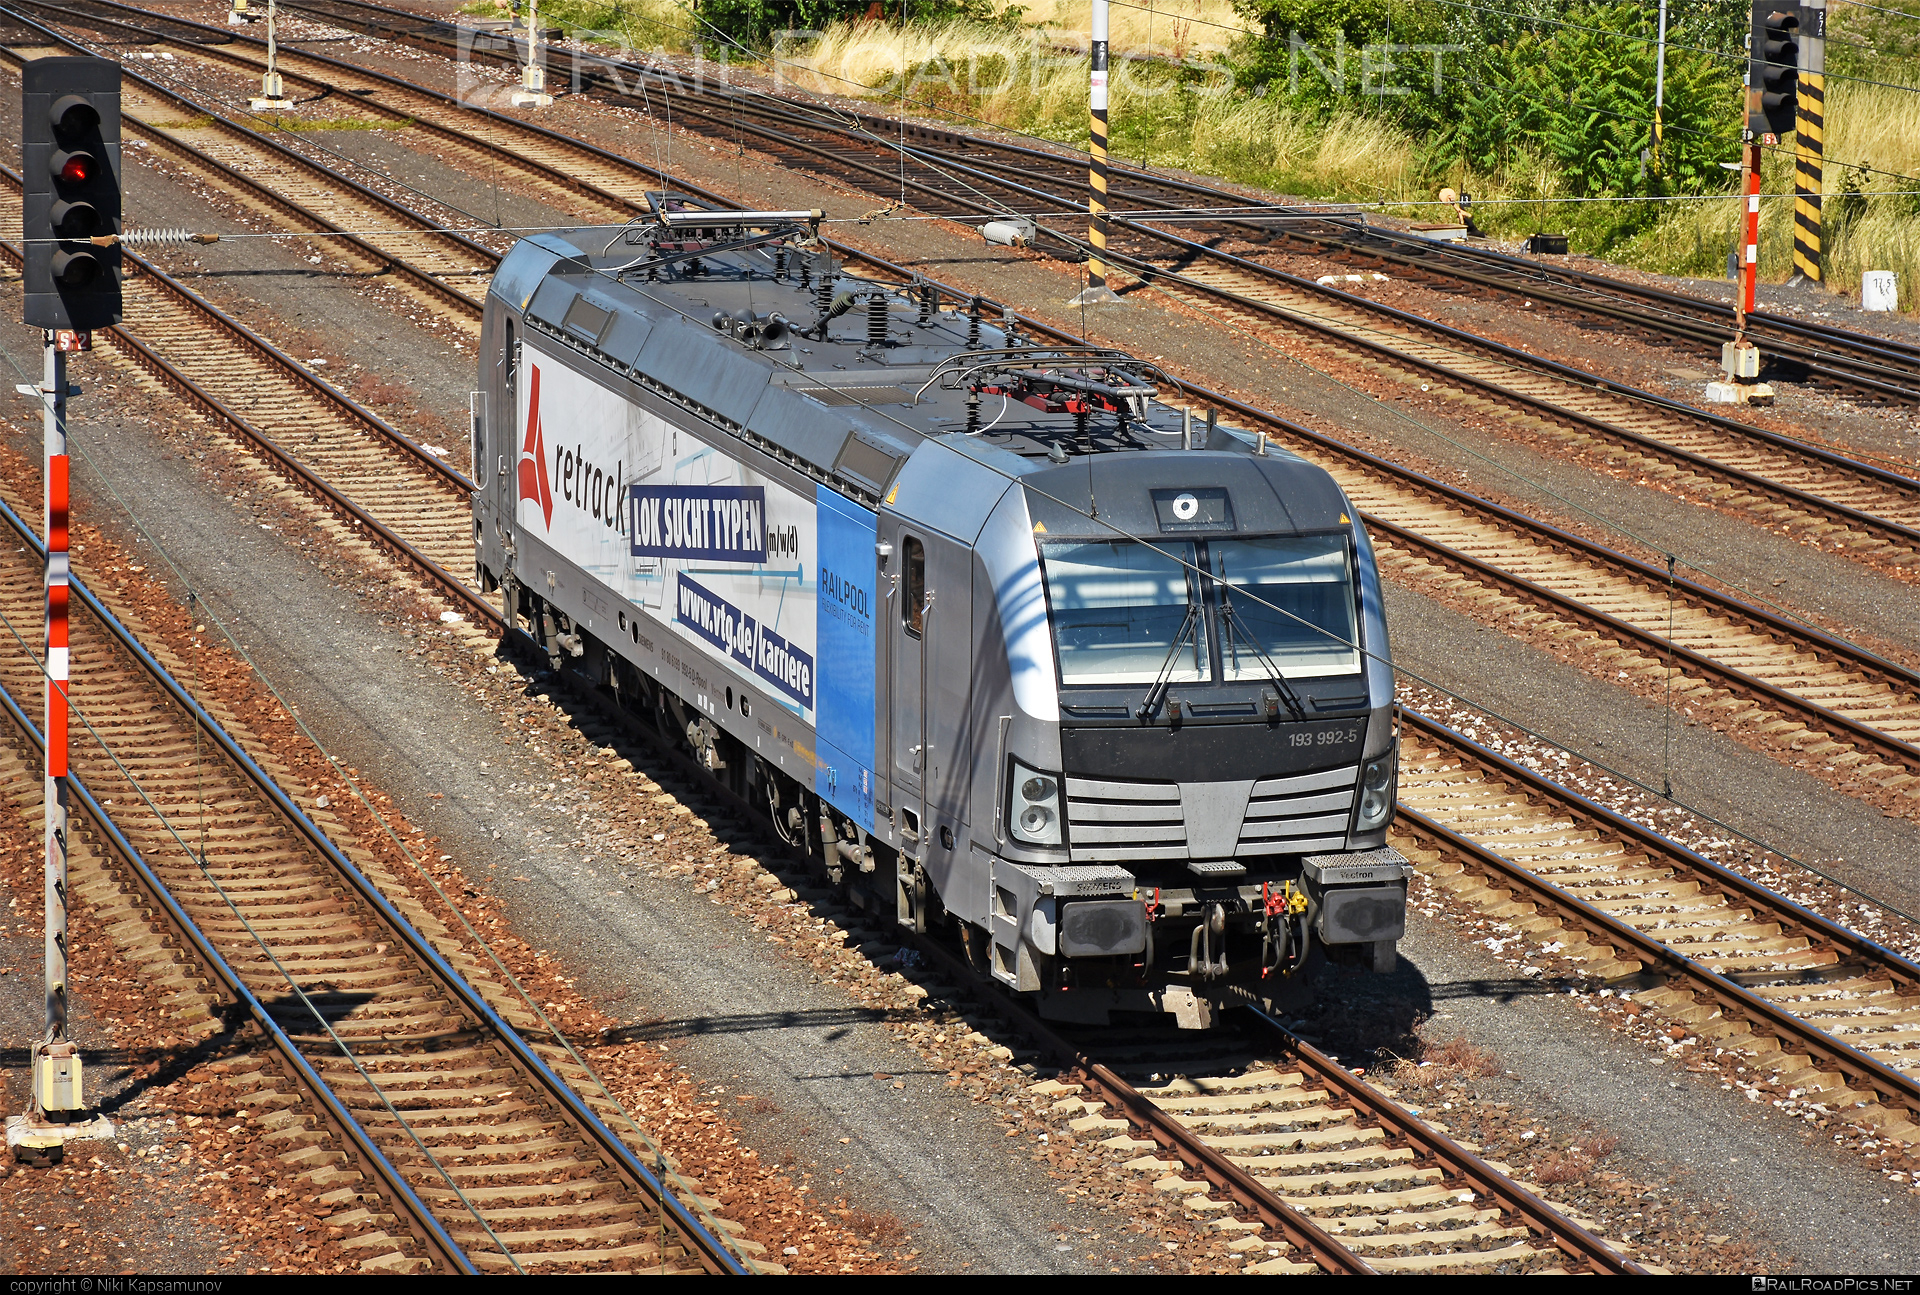 Siemens Vectron AC - 193 992-5 operated by Retrack GmbH & Co. KG #railpool #railpoolgmbh #retrack #retrackgmbh #siemens #siemensvectron #siemensvectronac #vectron #vectronac #vtg